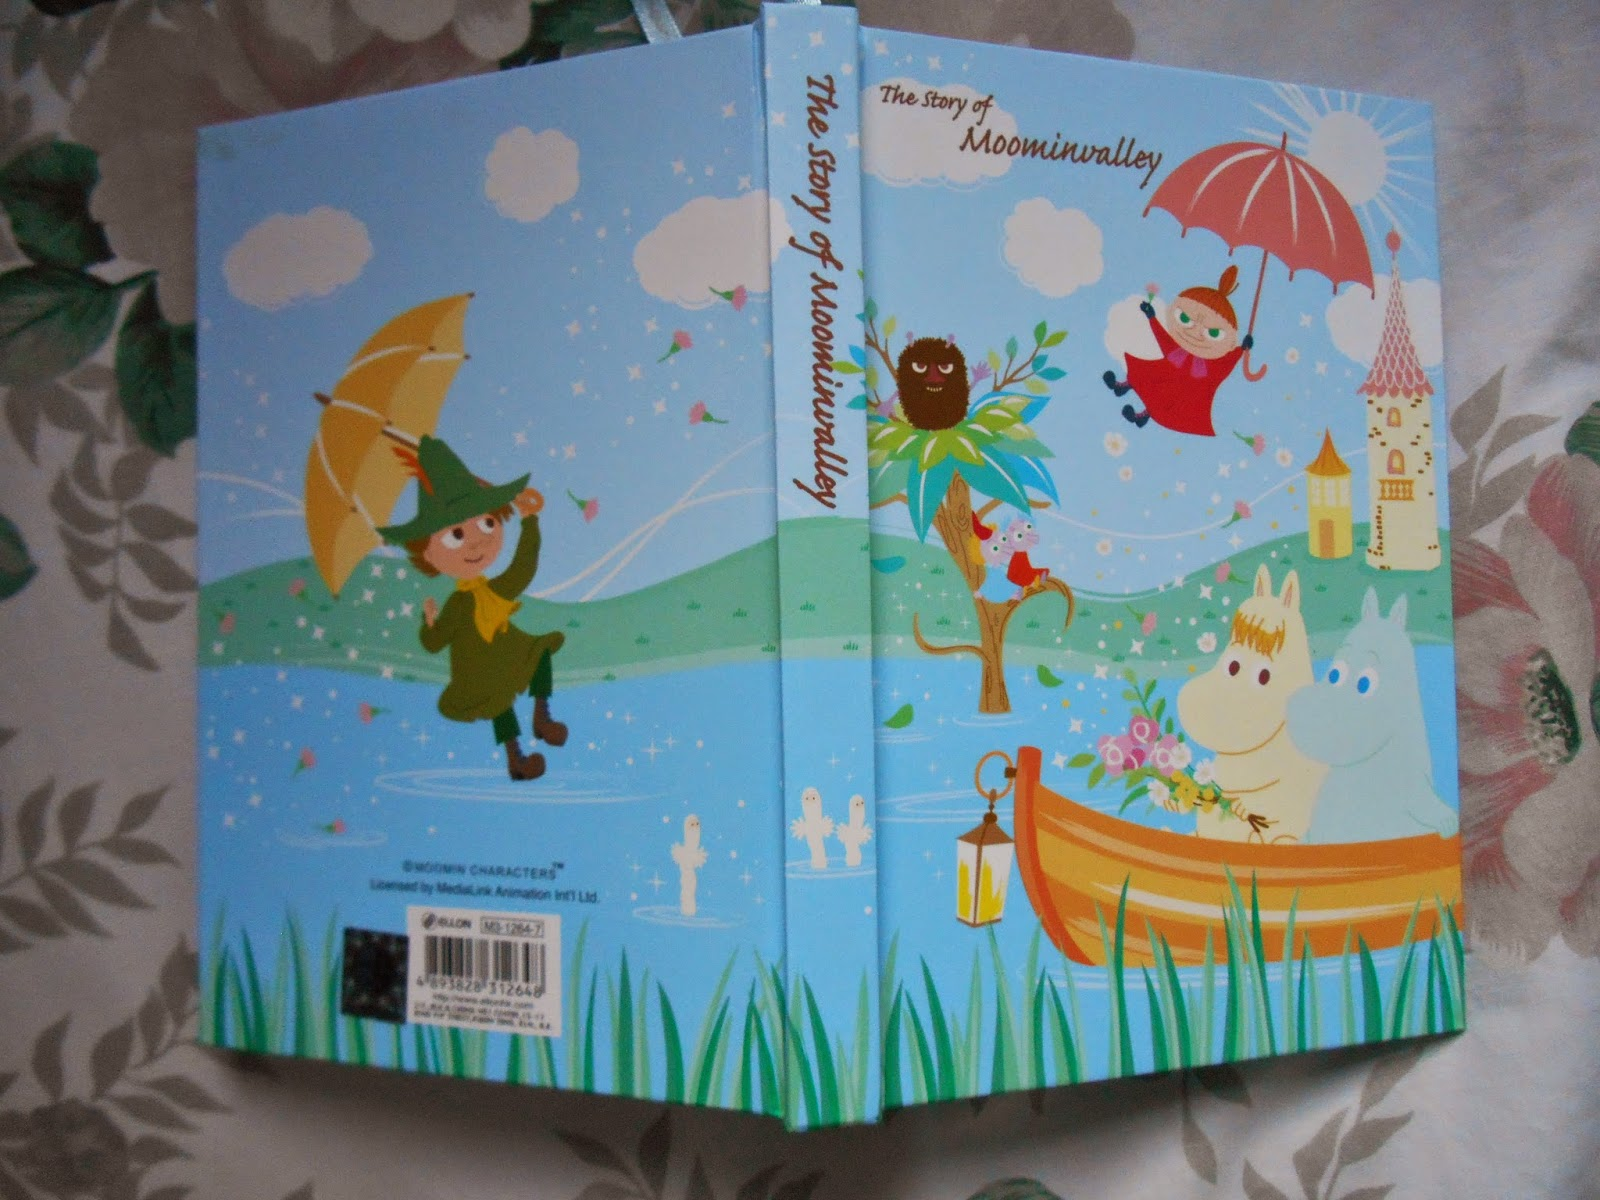 Moomin Diary cover with Moomintroll, Snorkmaiden, Little My, Snufkin and Stinky